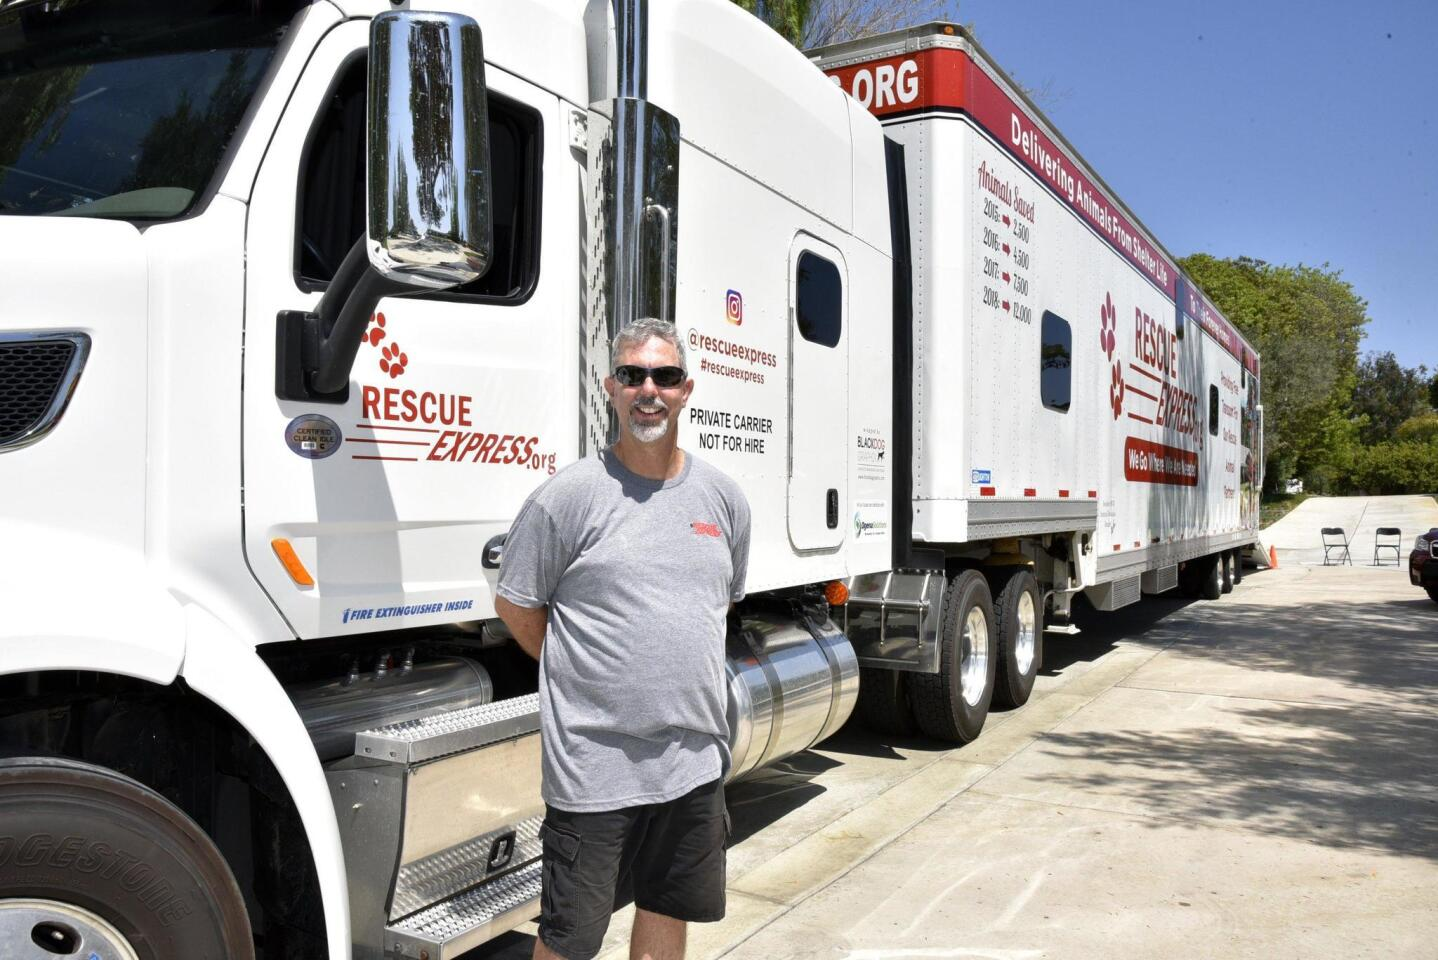 John Mercer transports the animals in the Rescue Express truck